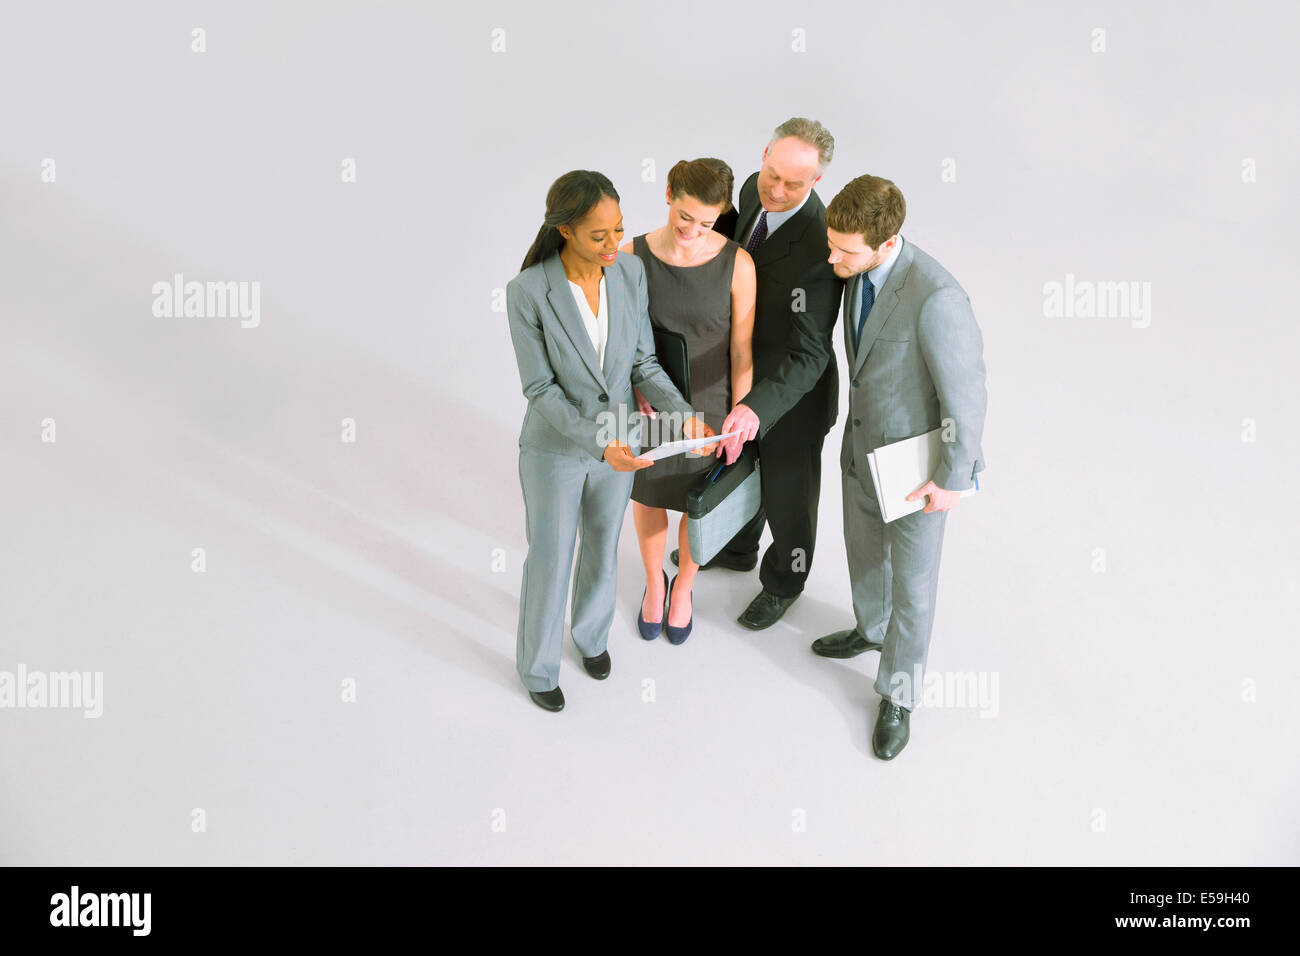 Business people reviewing paperwork - Stock Image